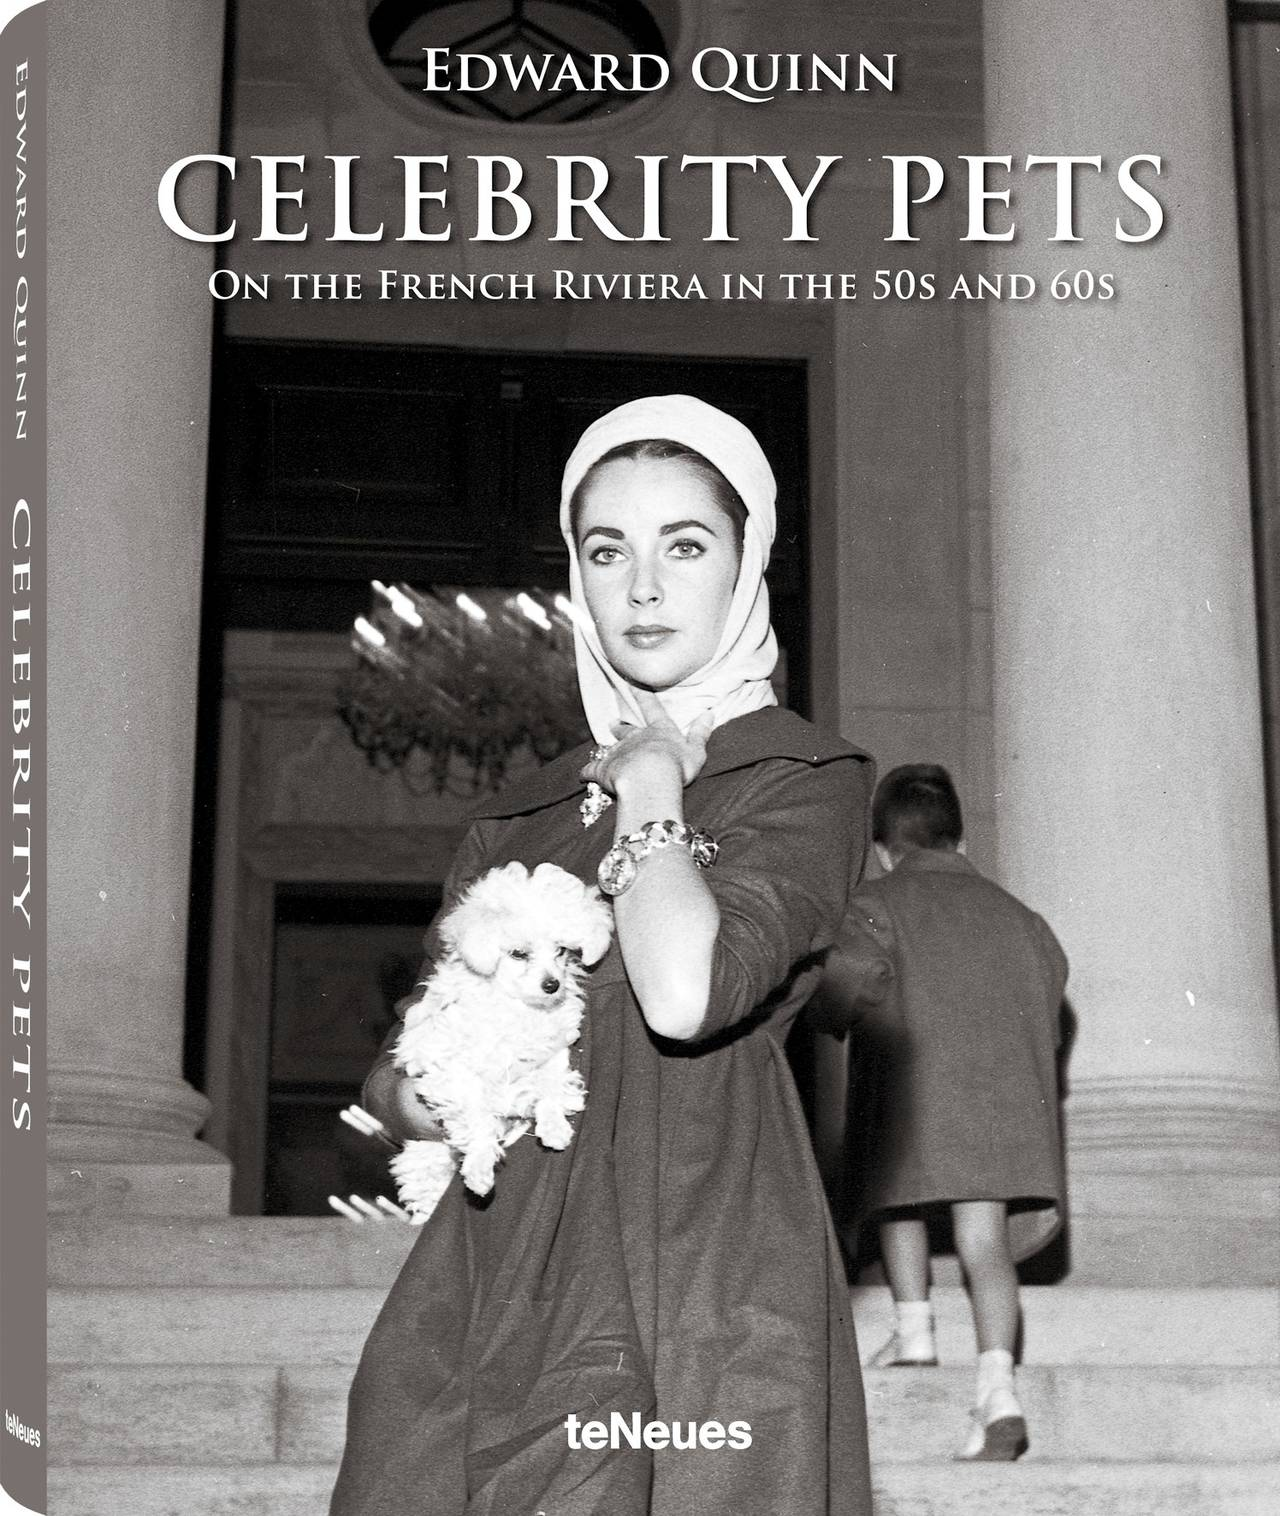 © Celebrity Pets - On the French Riviera in the 50s and 60s by Edward Quinn, published by teNeues, www.teneues.com. Elizabeth Taylor stands with one of her two Miniature Poodles in front of Villa Fiorentina. Saint-Jean-Cap-Ferrat 1957, Photo © 2014 edwardquinn.com. All rights reserved.